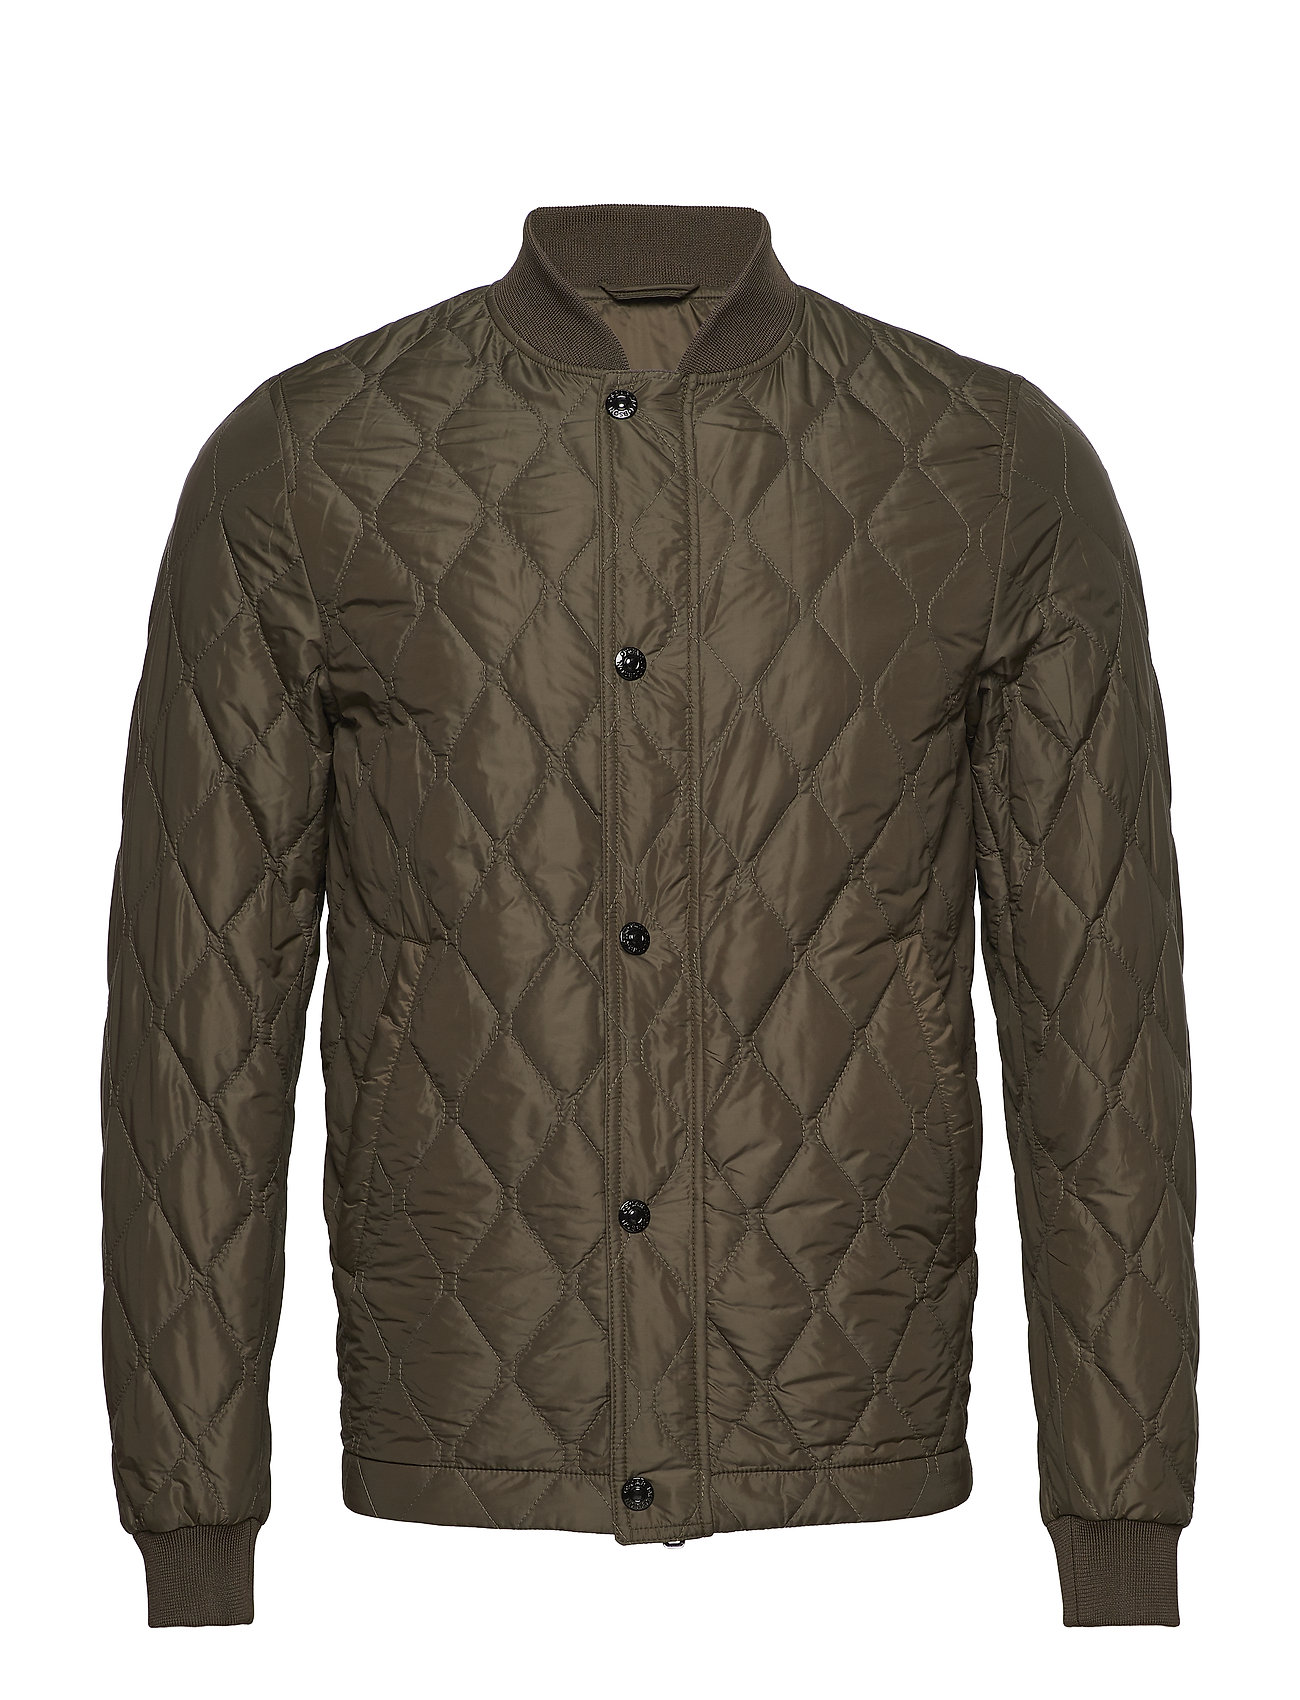 Oscar Jacobson Howie Jacket - 817 - MILITARY GREEN